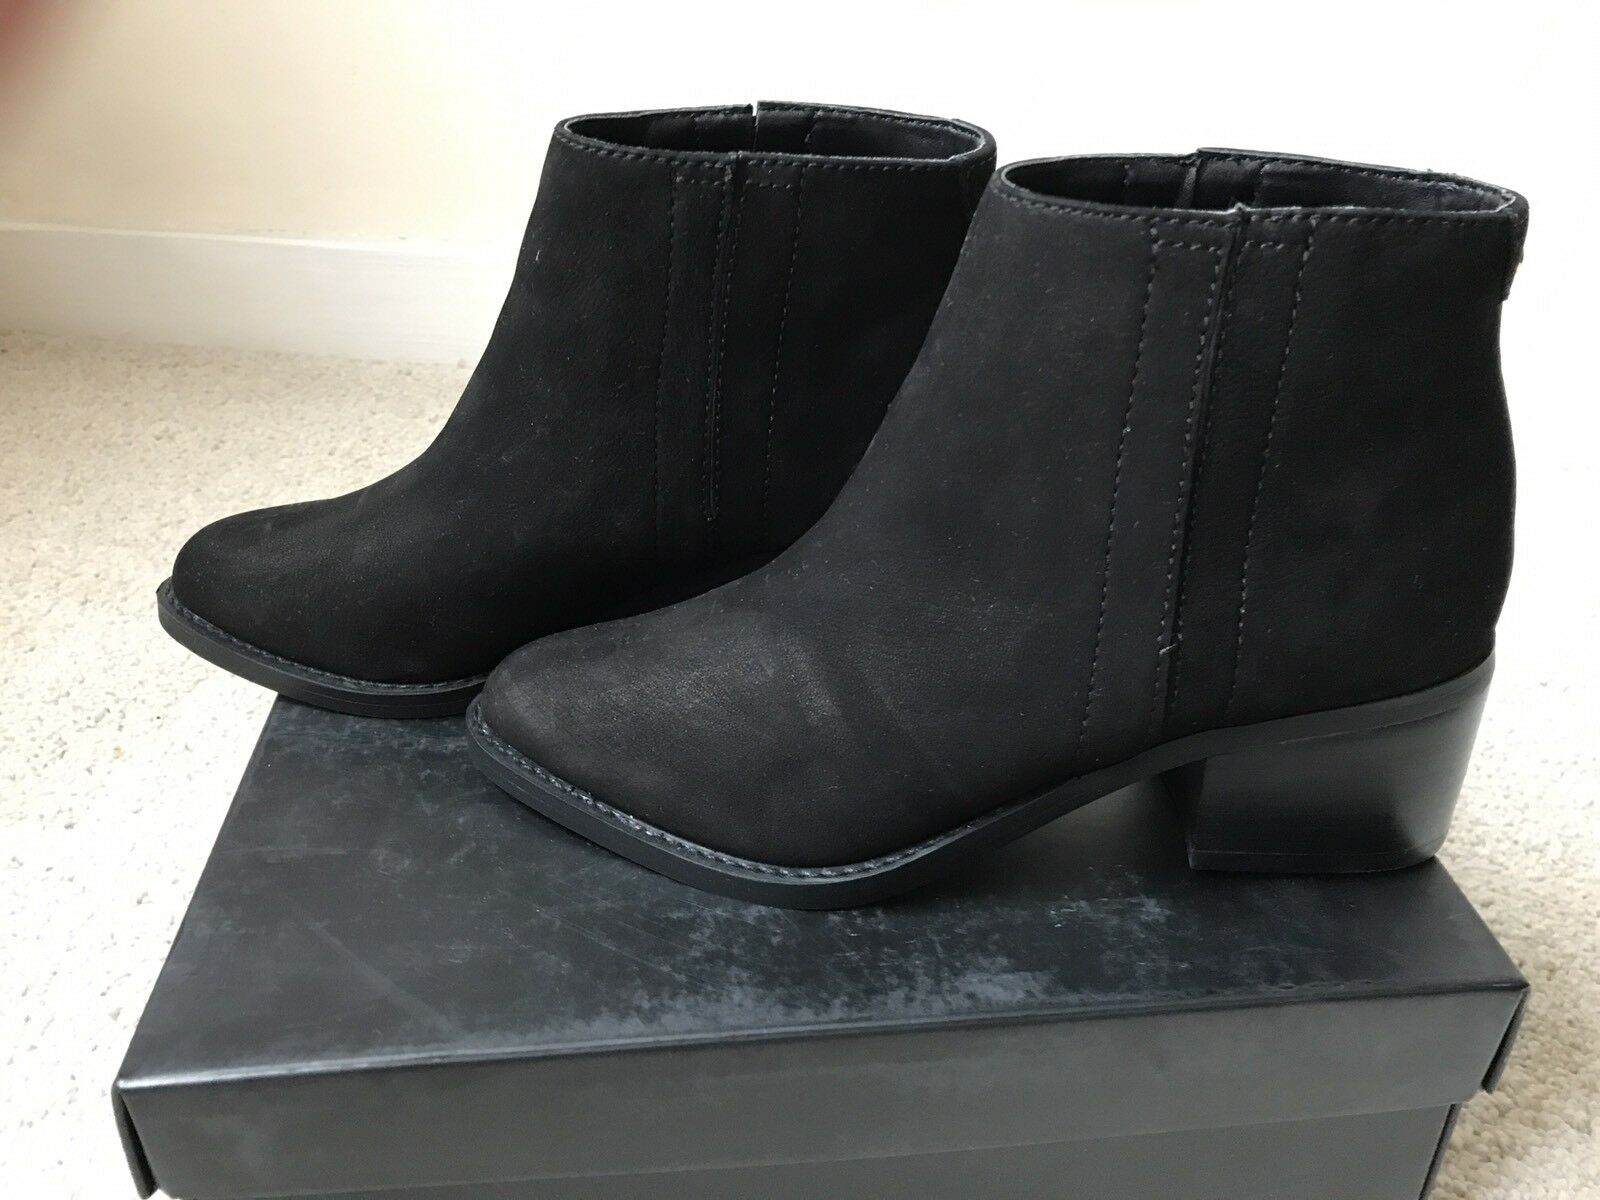 Zapatos especiales con descuento Kurt Geiger Ladies Black Leather Ankle Boots Sz 4 New In Box